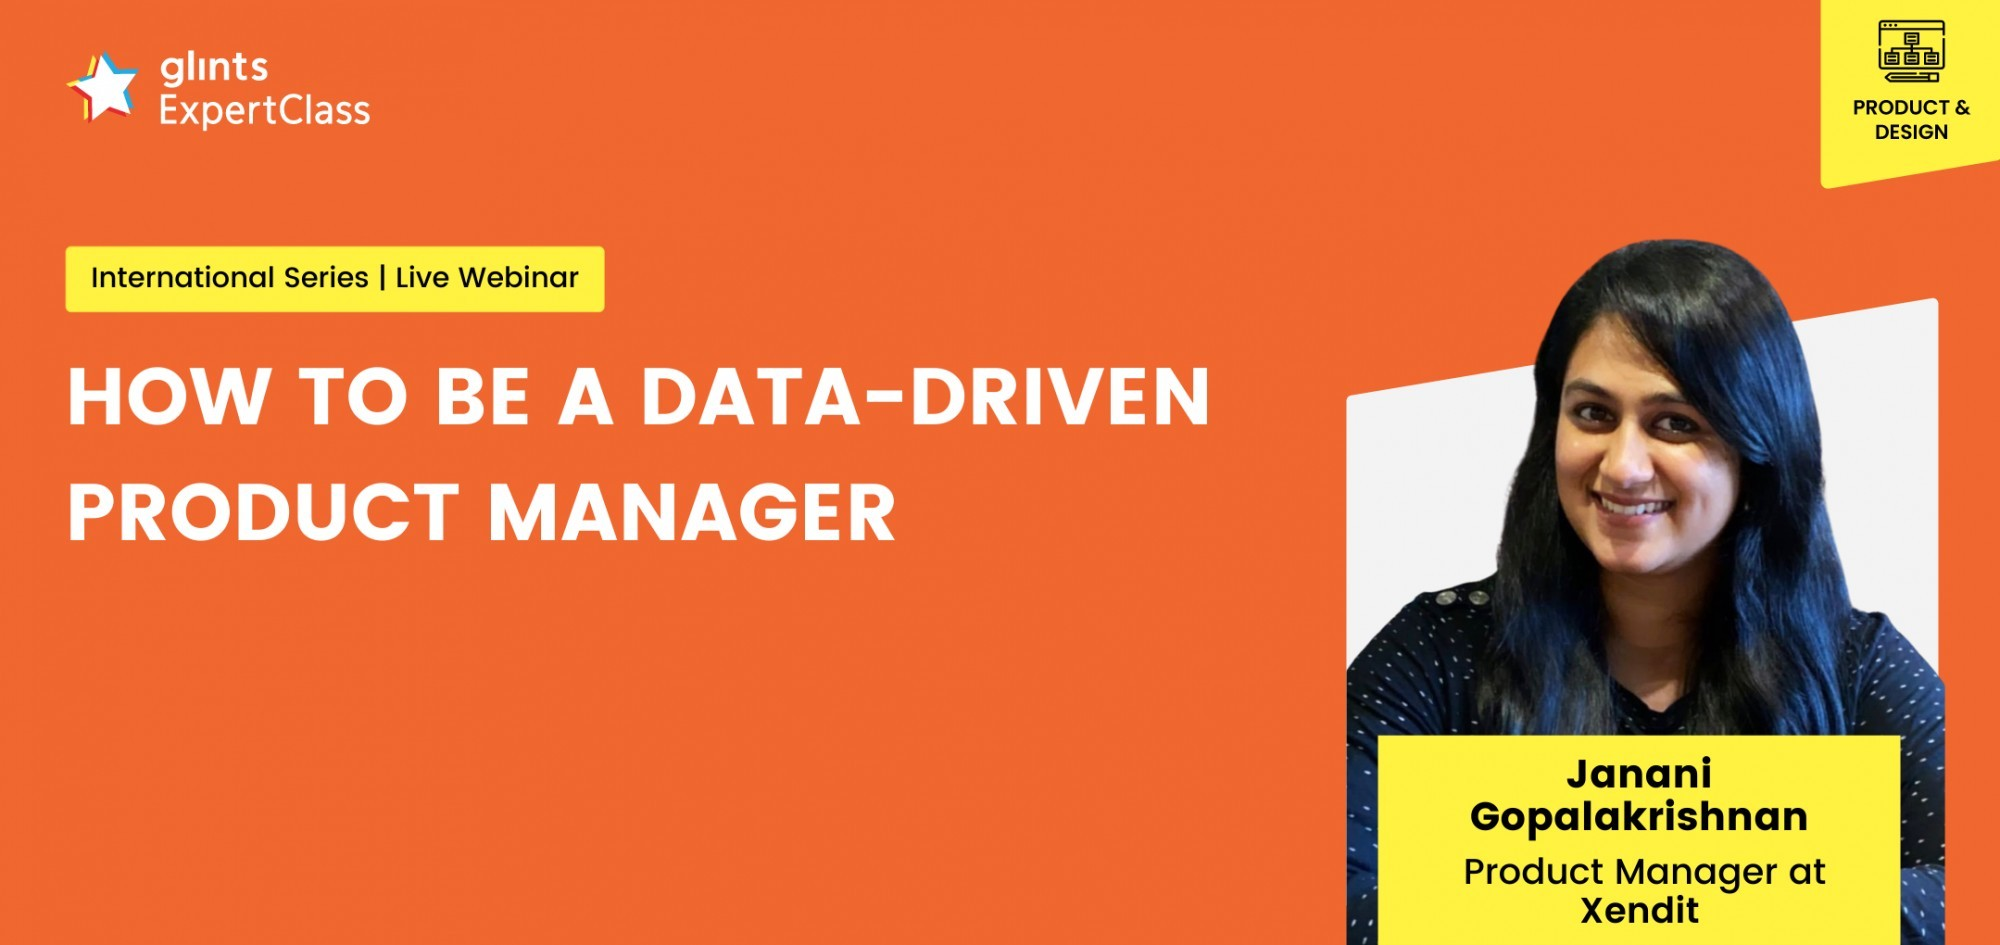 [Glints - GEC International Series] How to Be a Data-Driven Product Manager